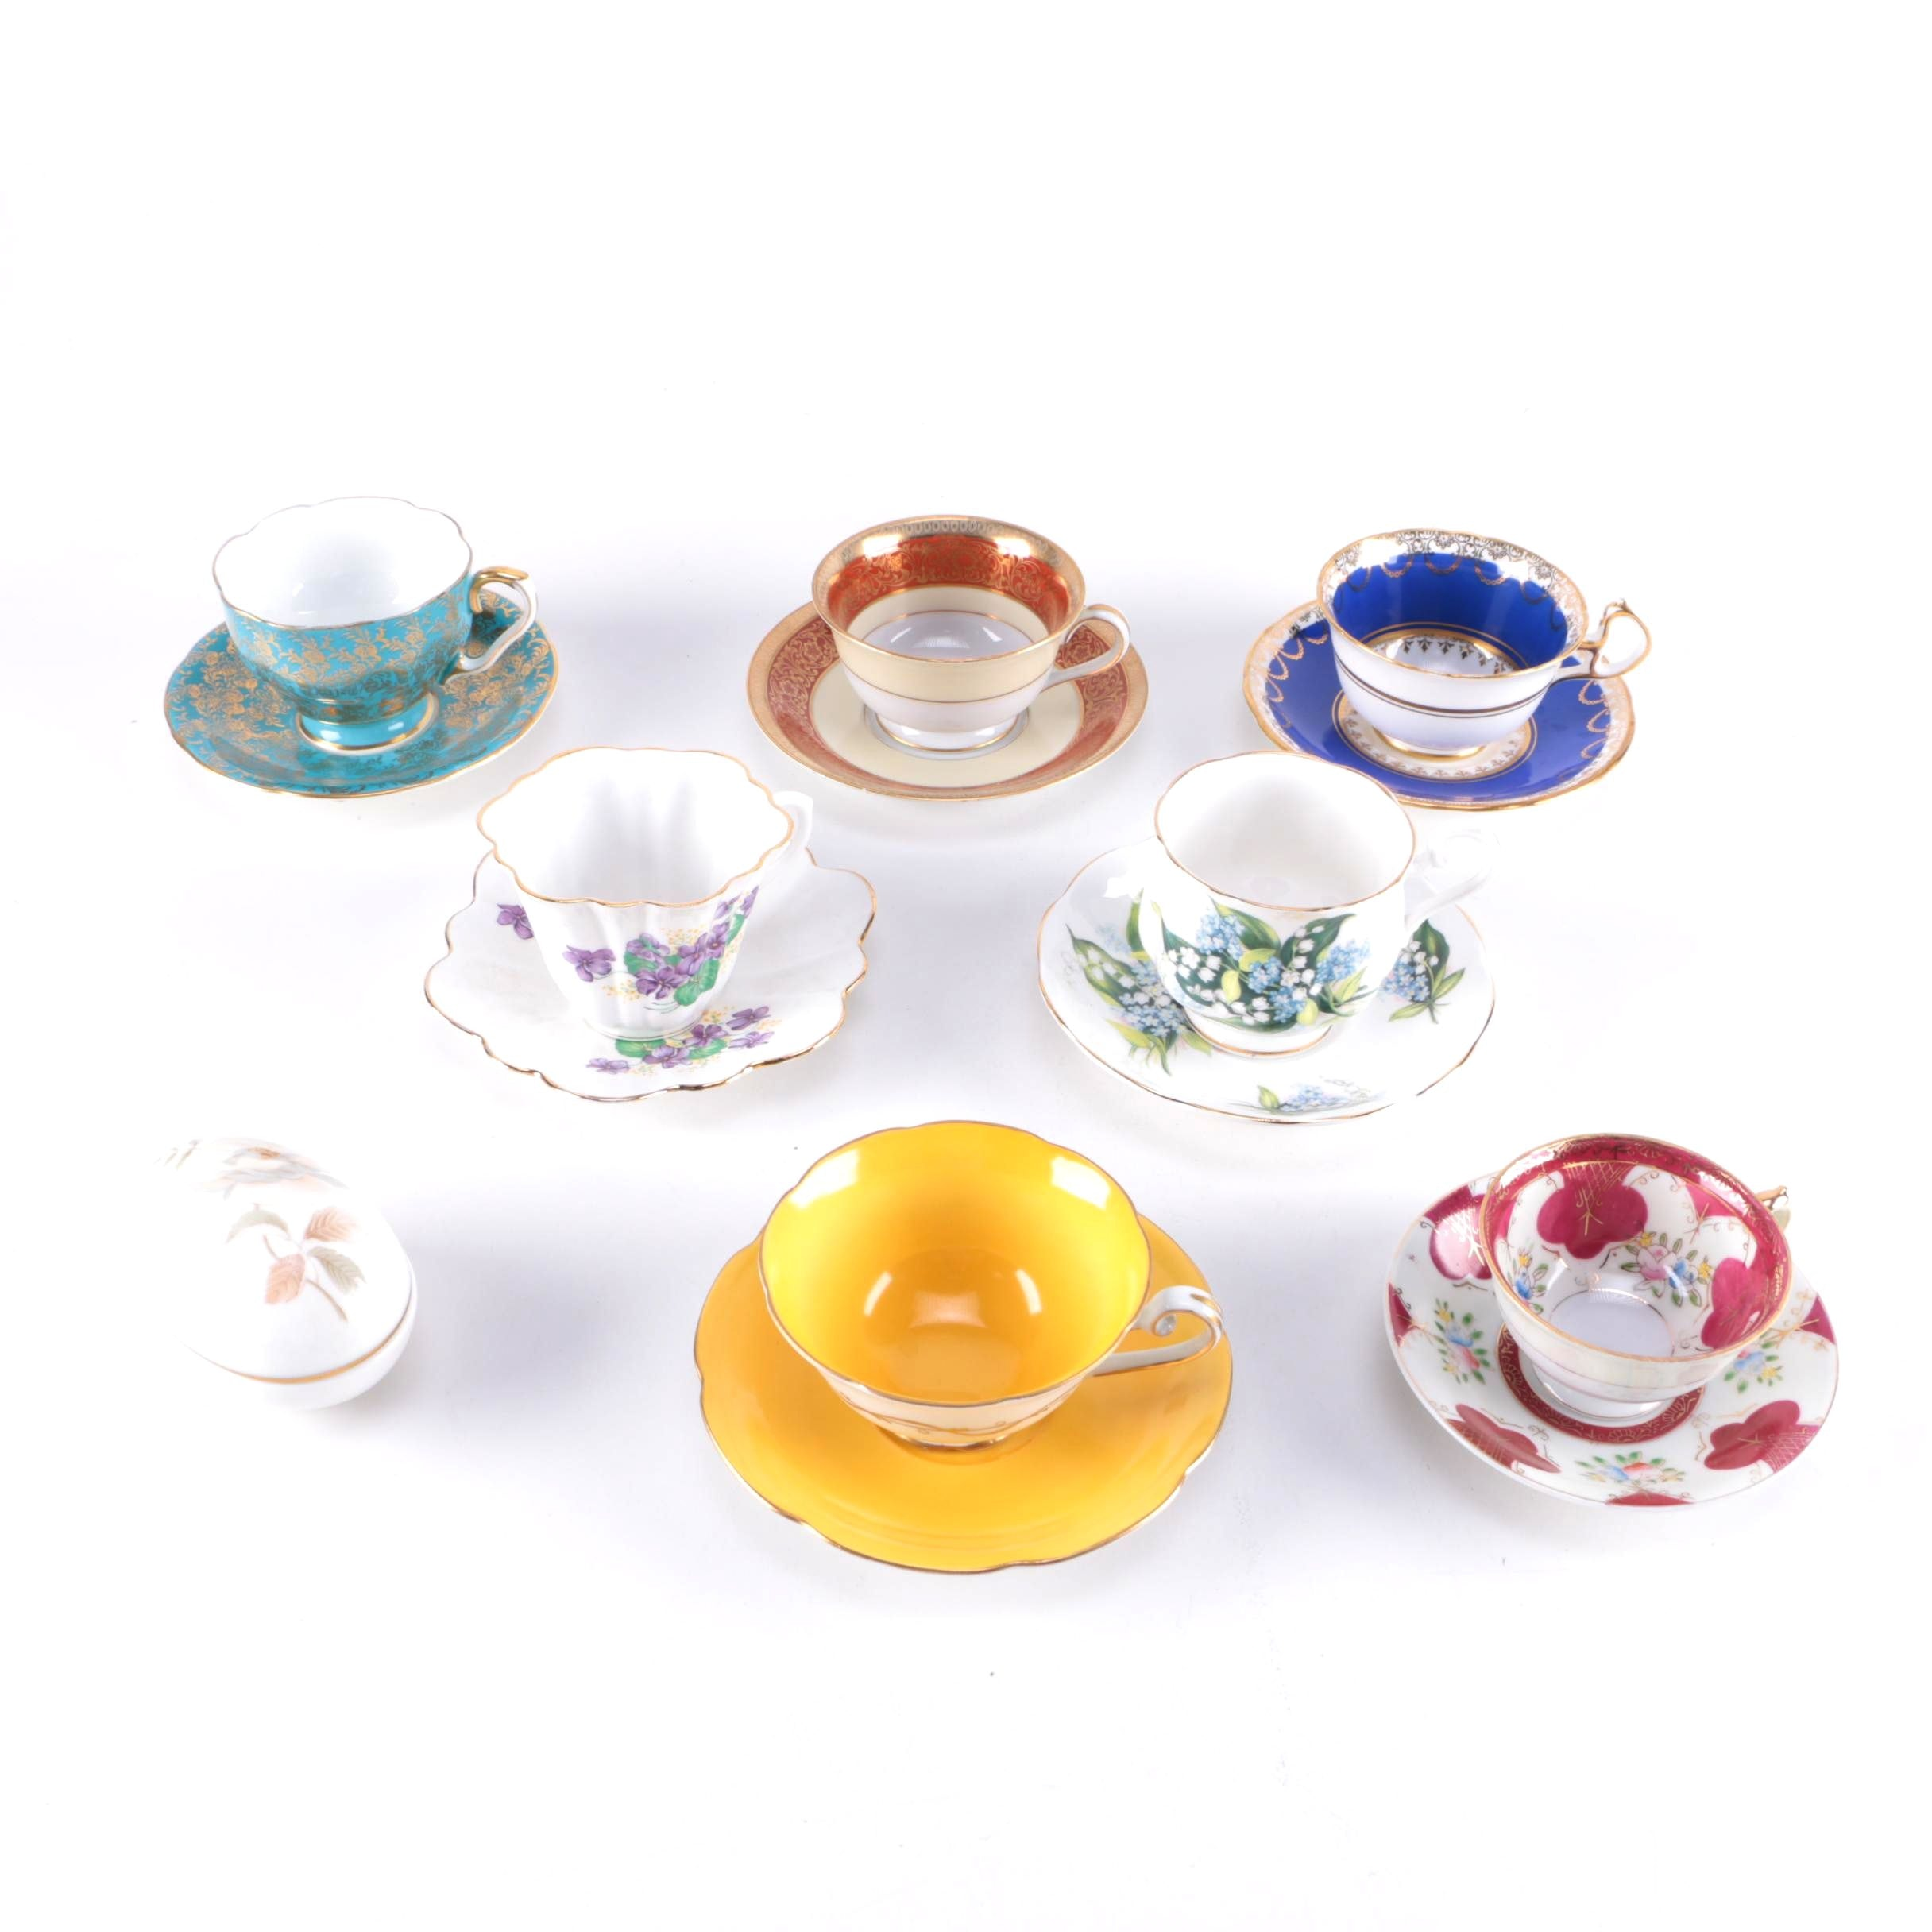 Collection of Bone China Teacups and Saucers and Egg